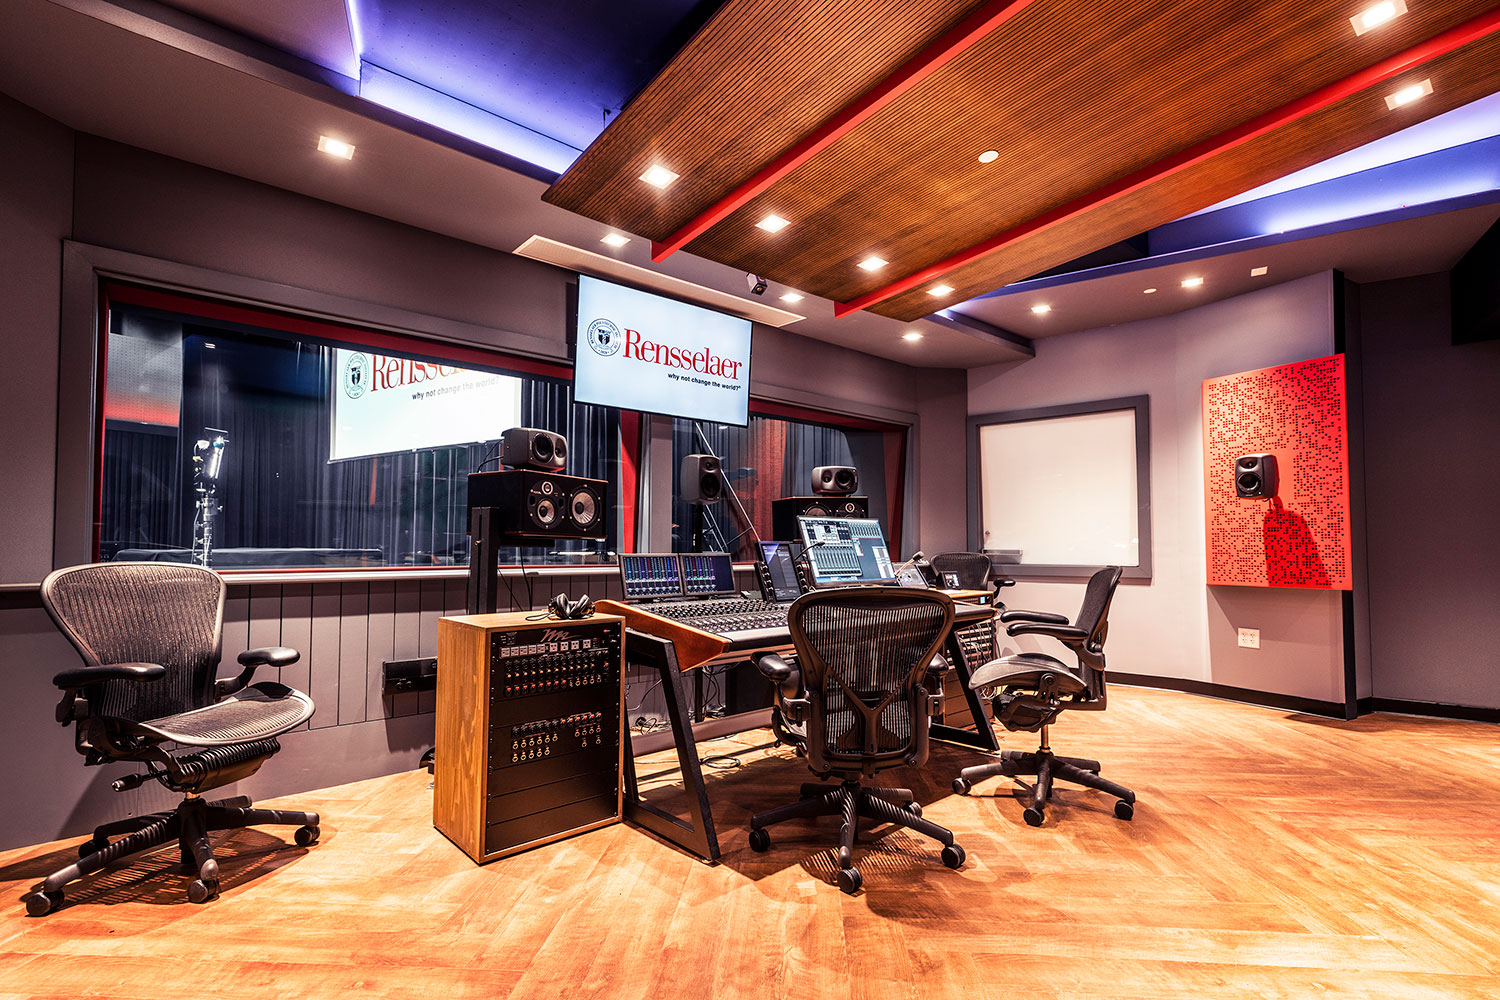 Rensselaer Polytechnic Institute (RPI) brand new state-of-the-art audio production facilities, designed by WSDG - Main Control Room side view.